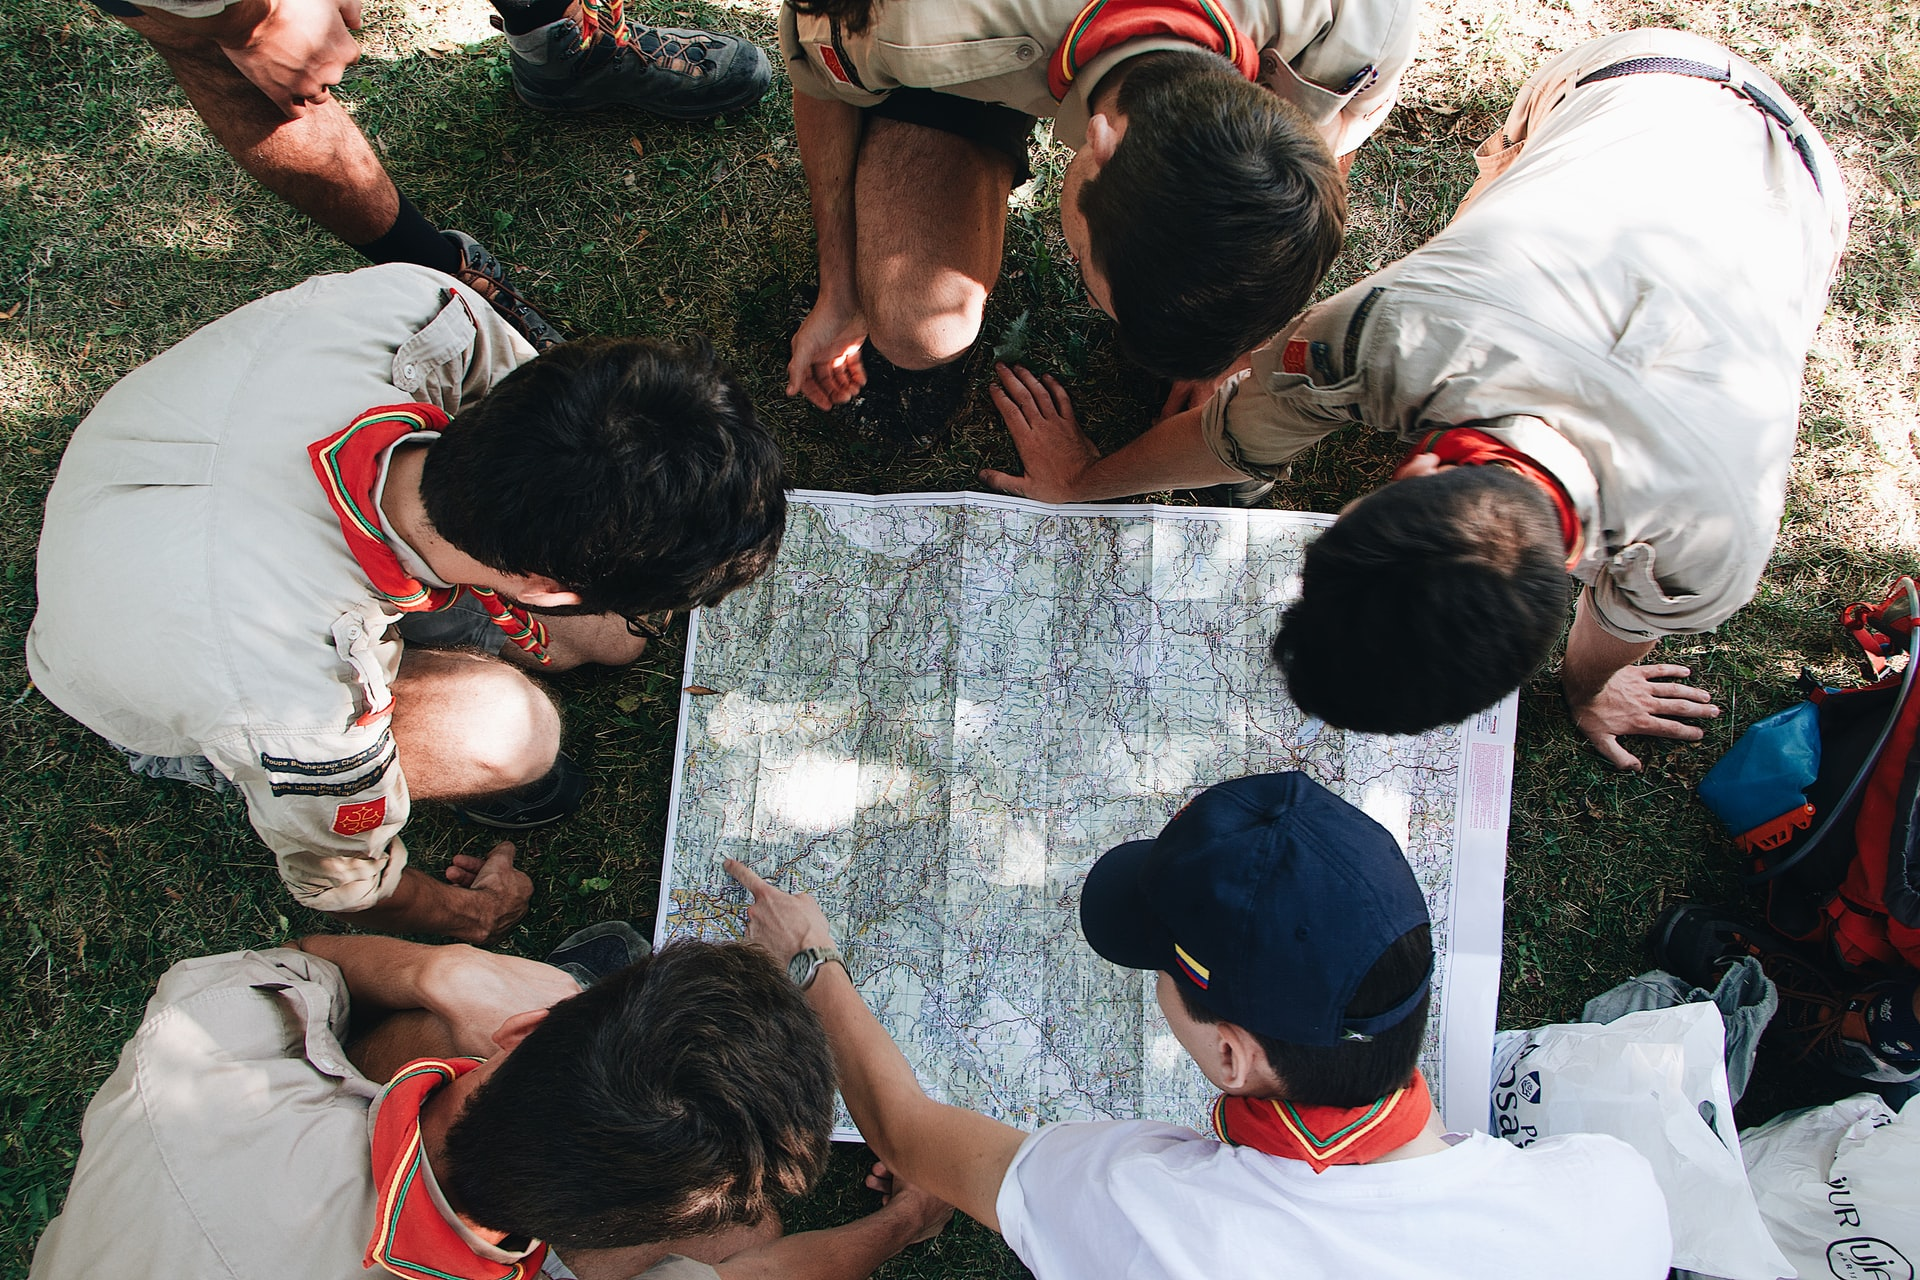 Scouts looking at a map together